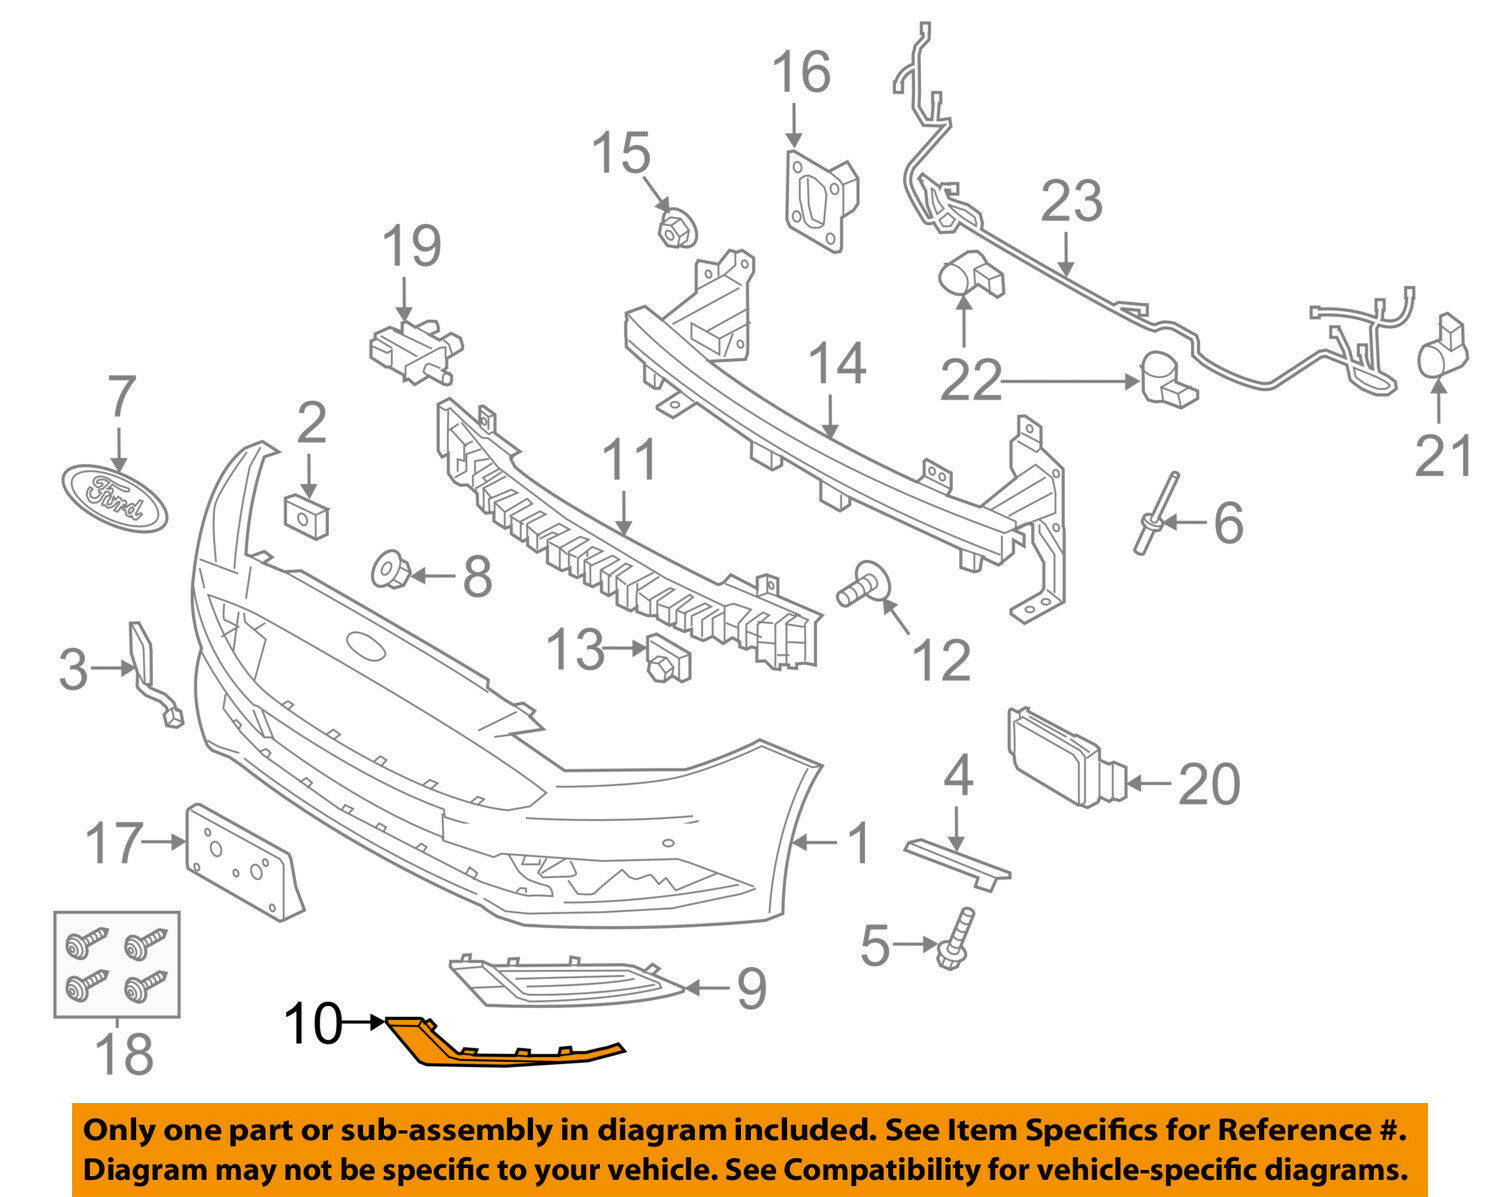 Ford Trim Diagrams Wiring Schematic Diagram 1997 Lincoln Mark 8 Fuse Box Oem 17 18 Fusion Front Bumper Grille Grill Molding Left 2008 Ranger